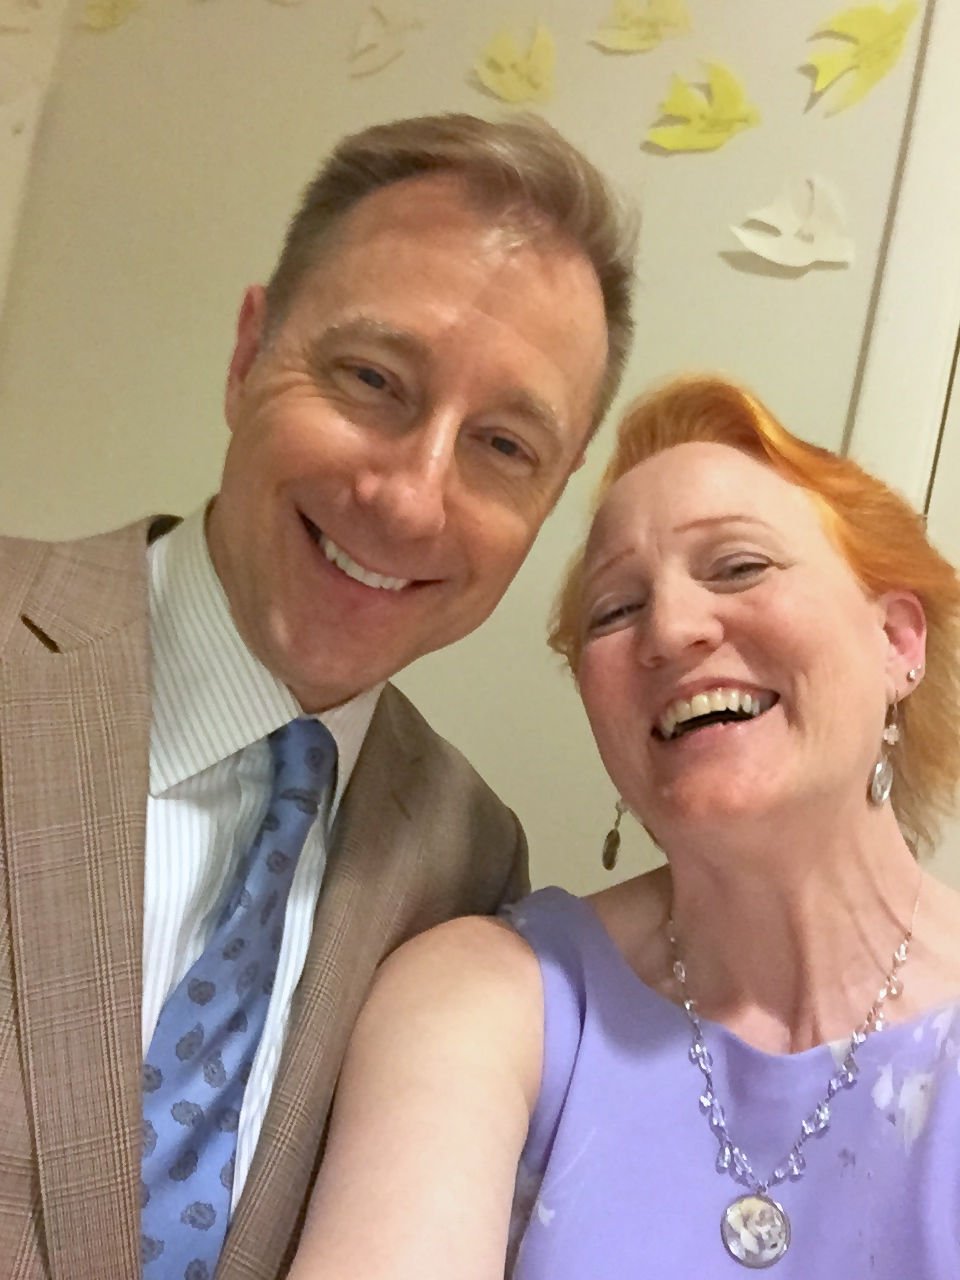 Selfies back stage - Don & Margaret